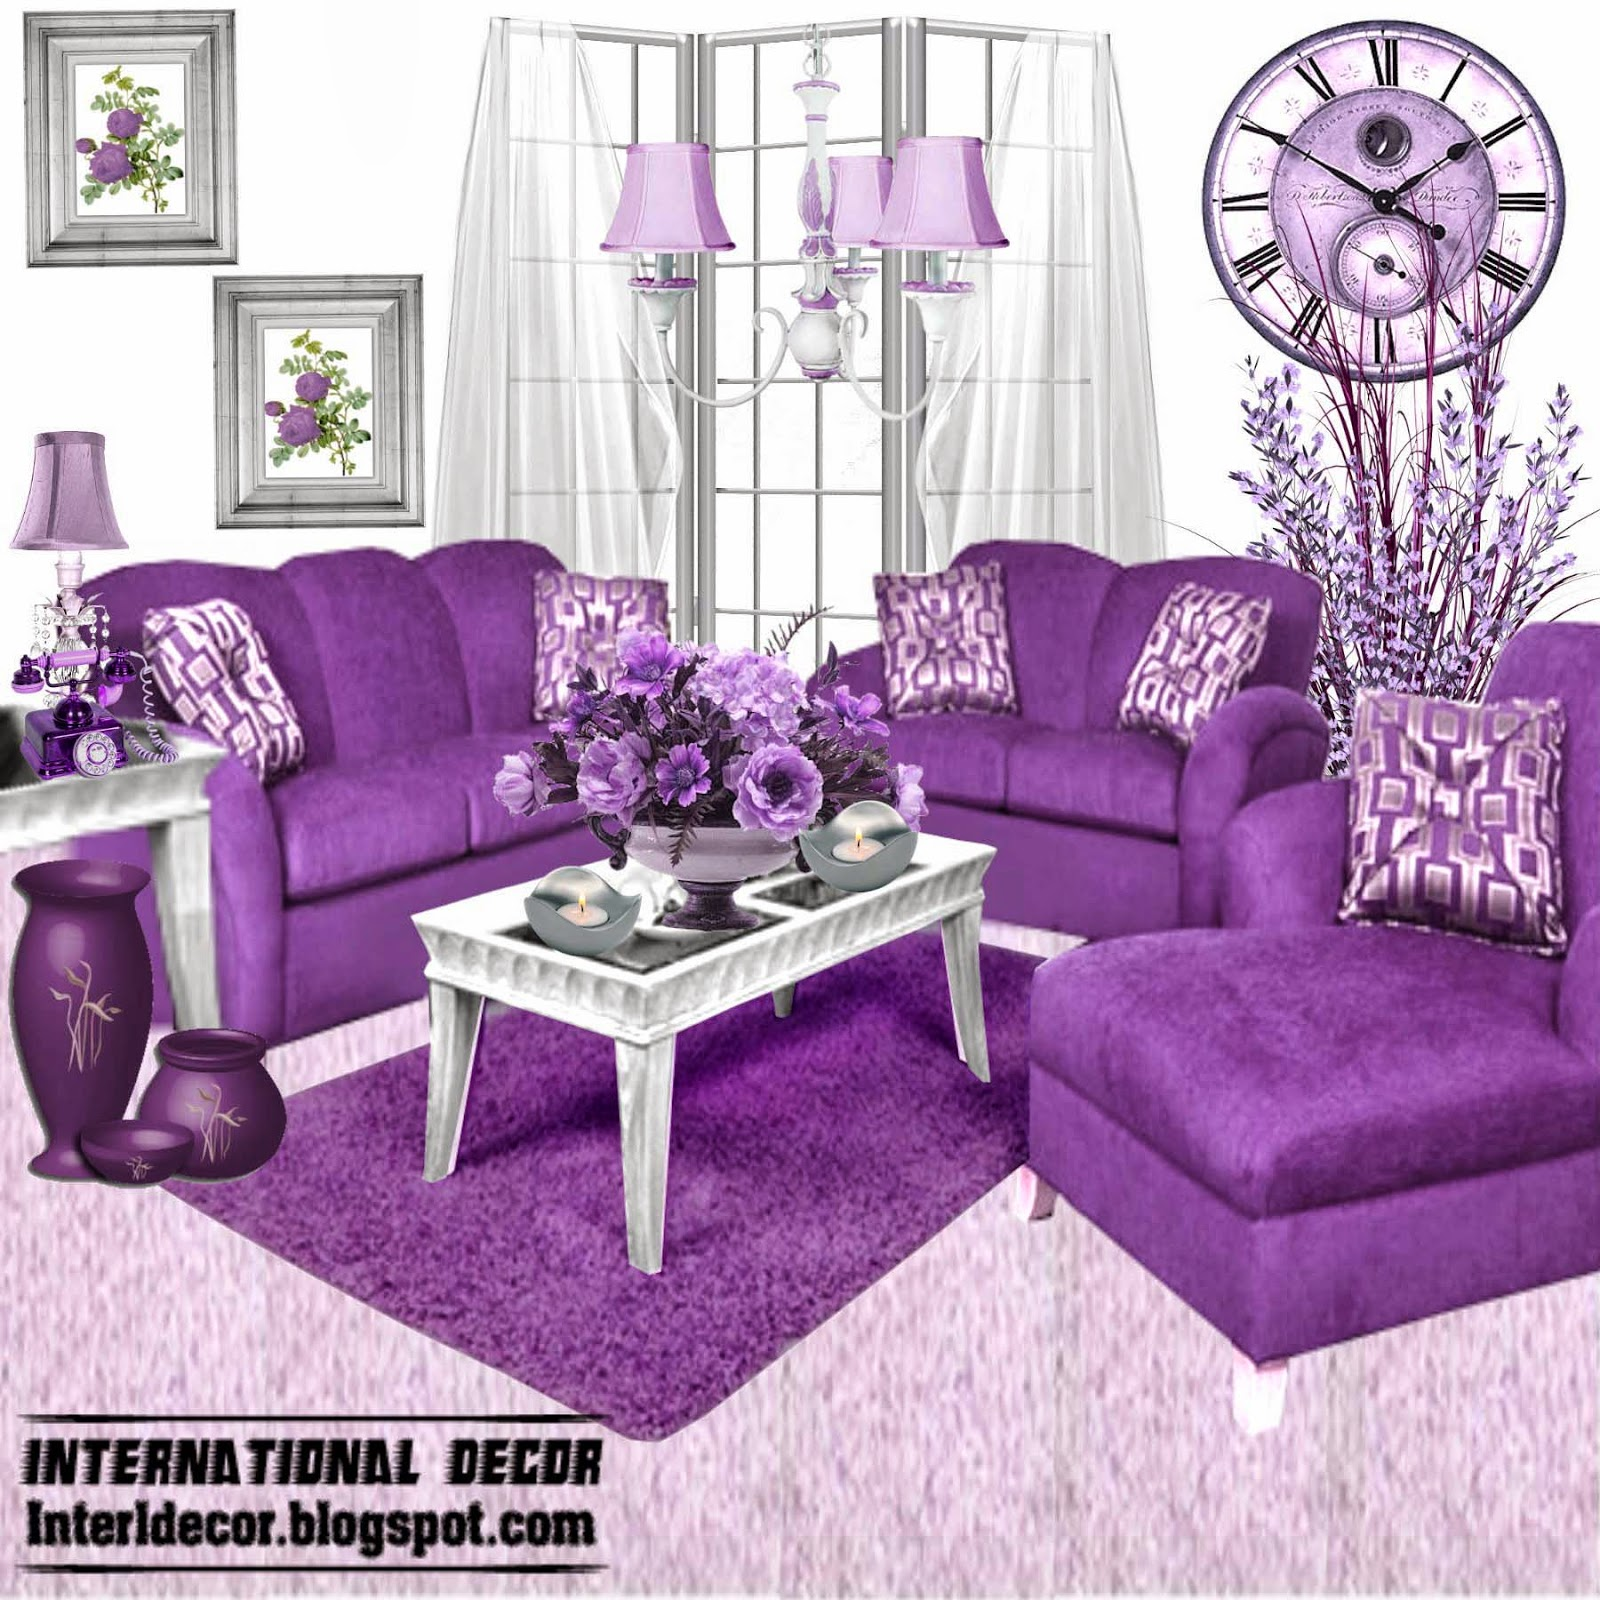 Luxury purple furniture sets sofas chairs for living for Living room chairs